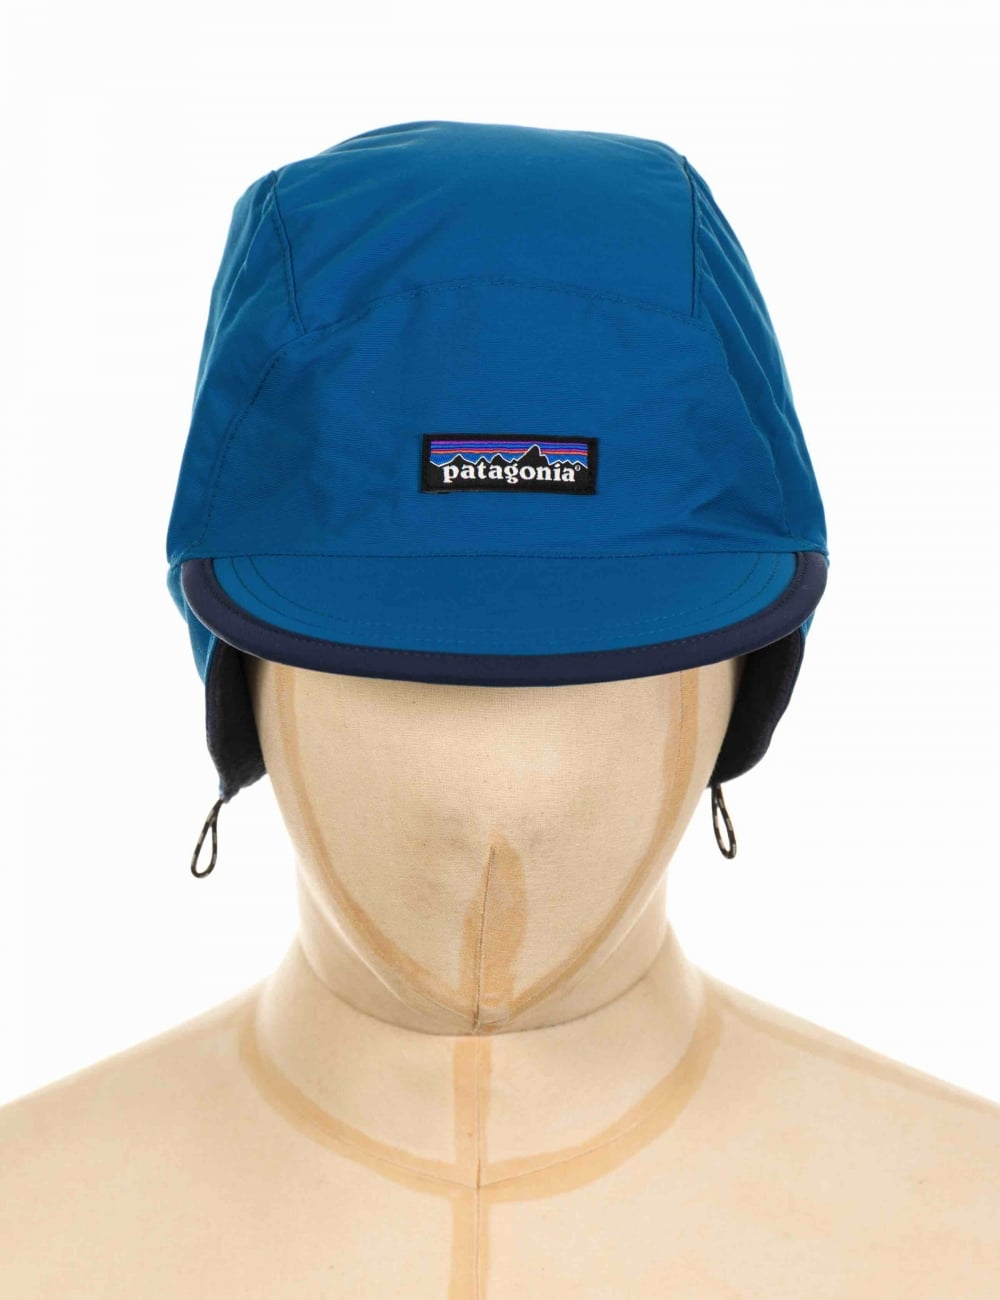 Patagonia Shelled Synchilla Duckbill Cap - Big Sur Blue - Hat Shop ... b3510eb1962